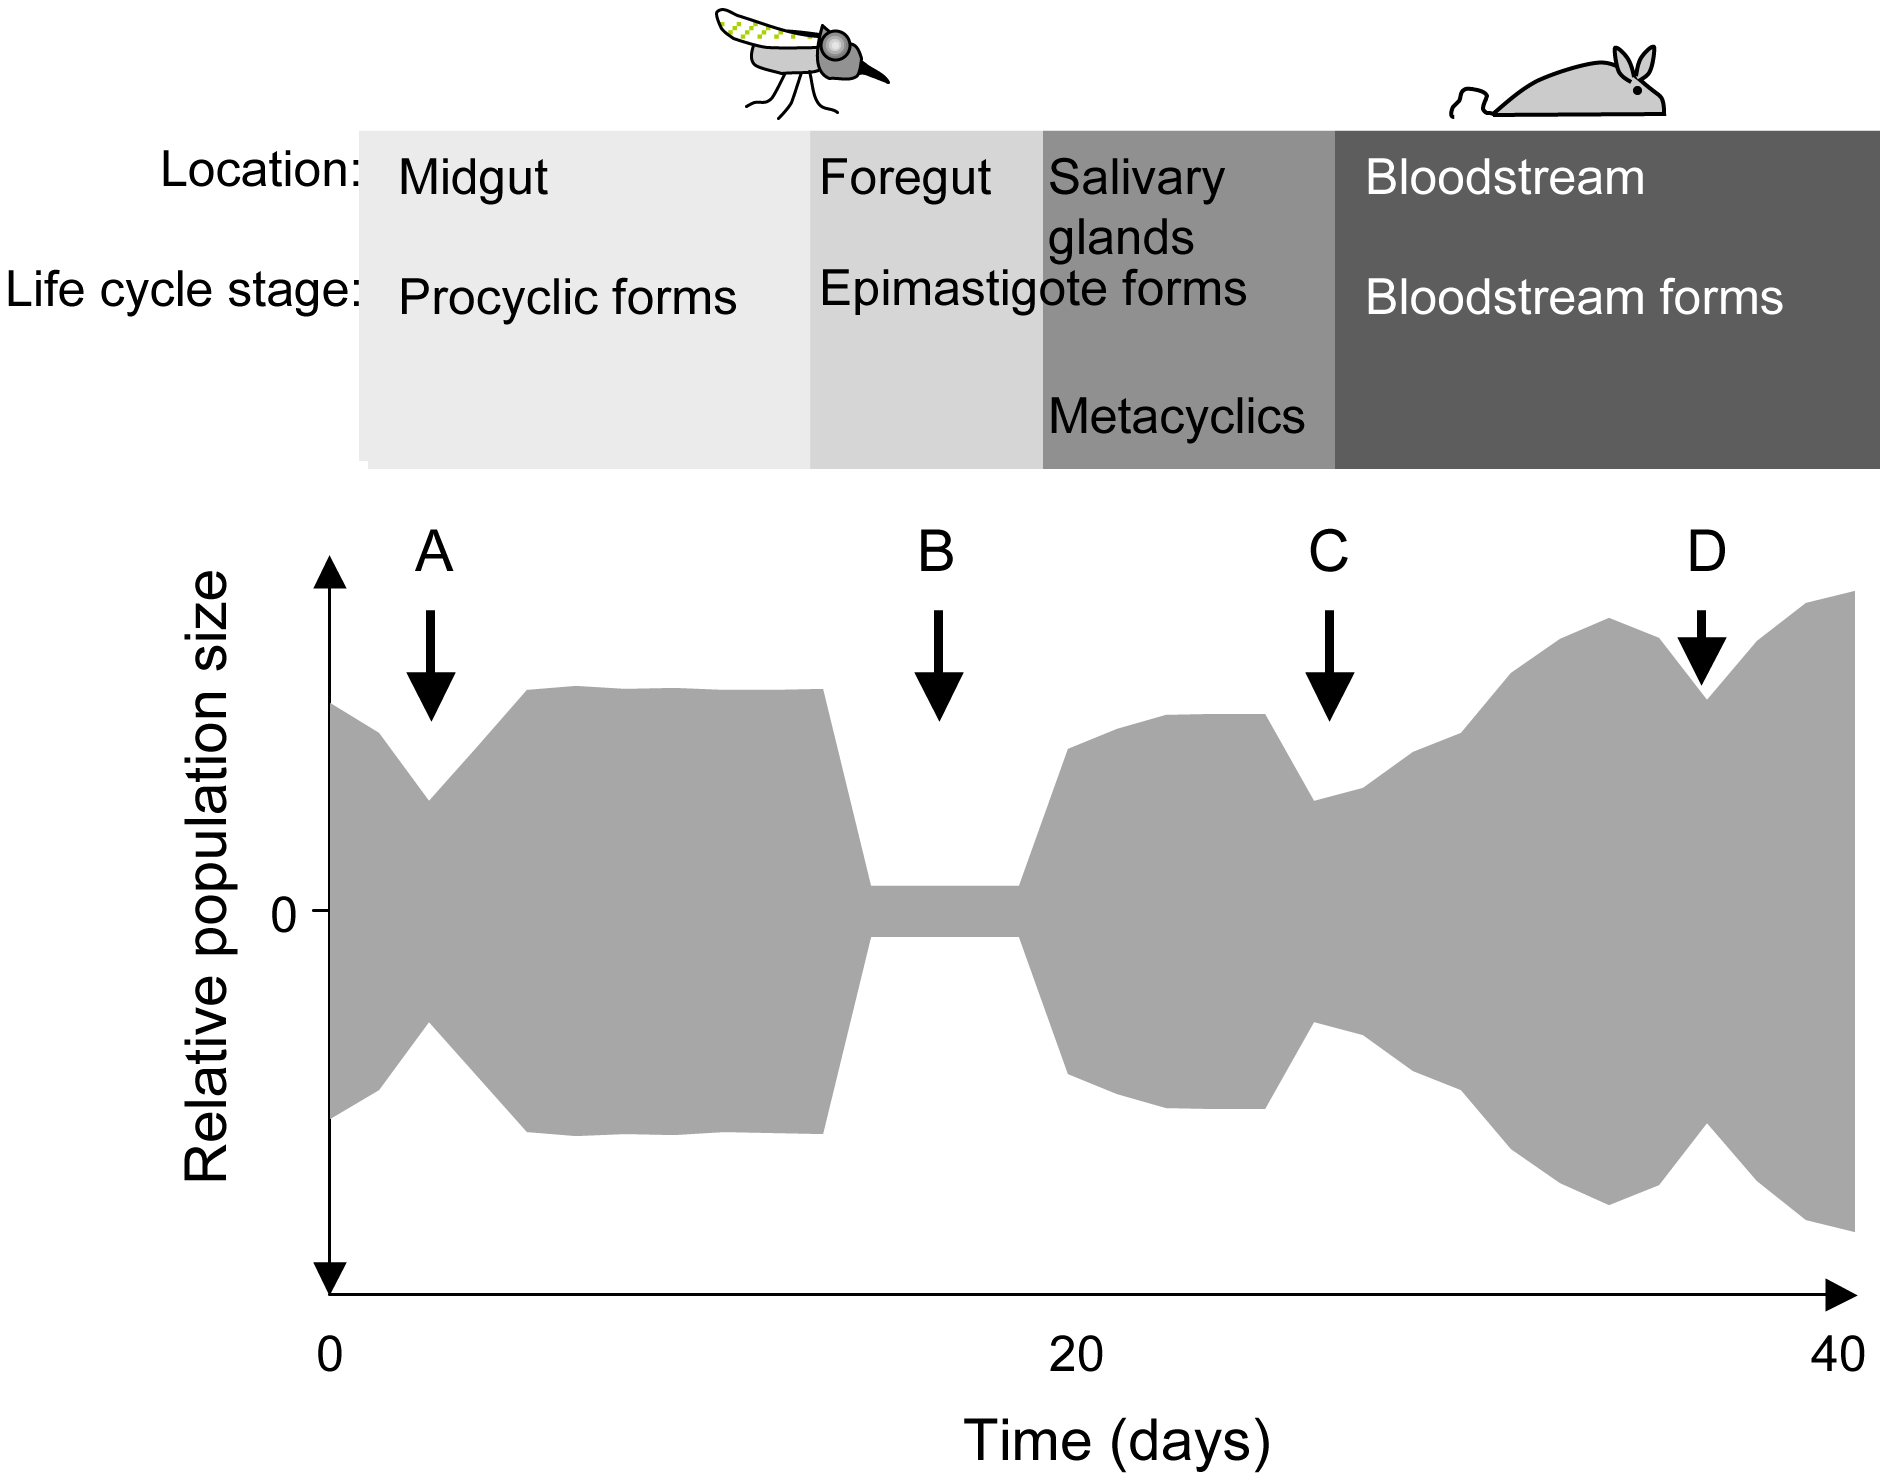 Schematic depiction of population bottlenecks during the life cycle of <i>Trypanosoma brucei</i>.